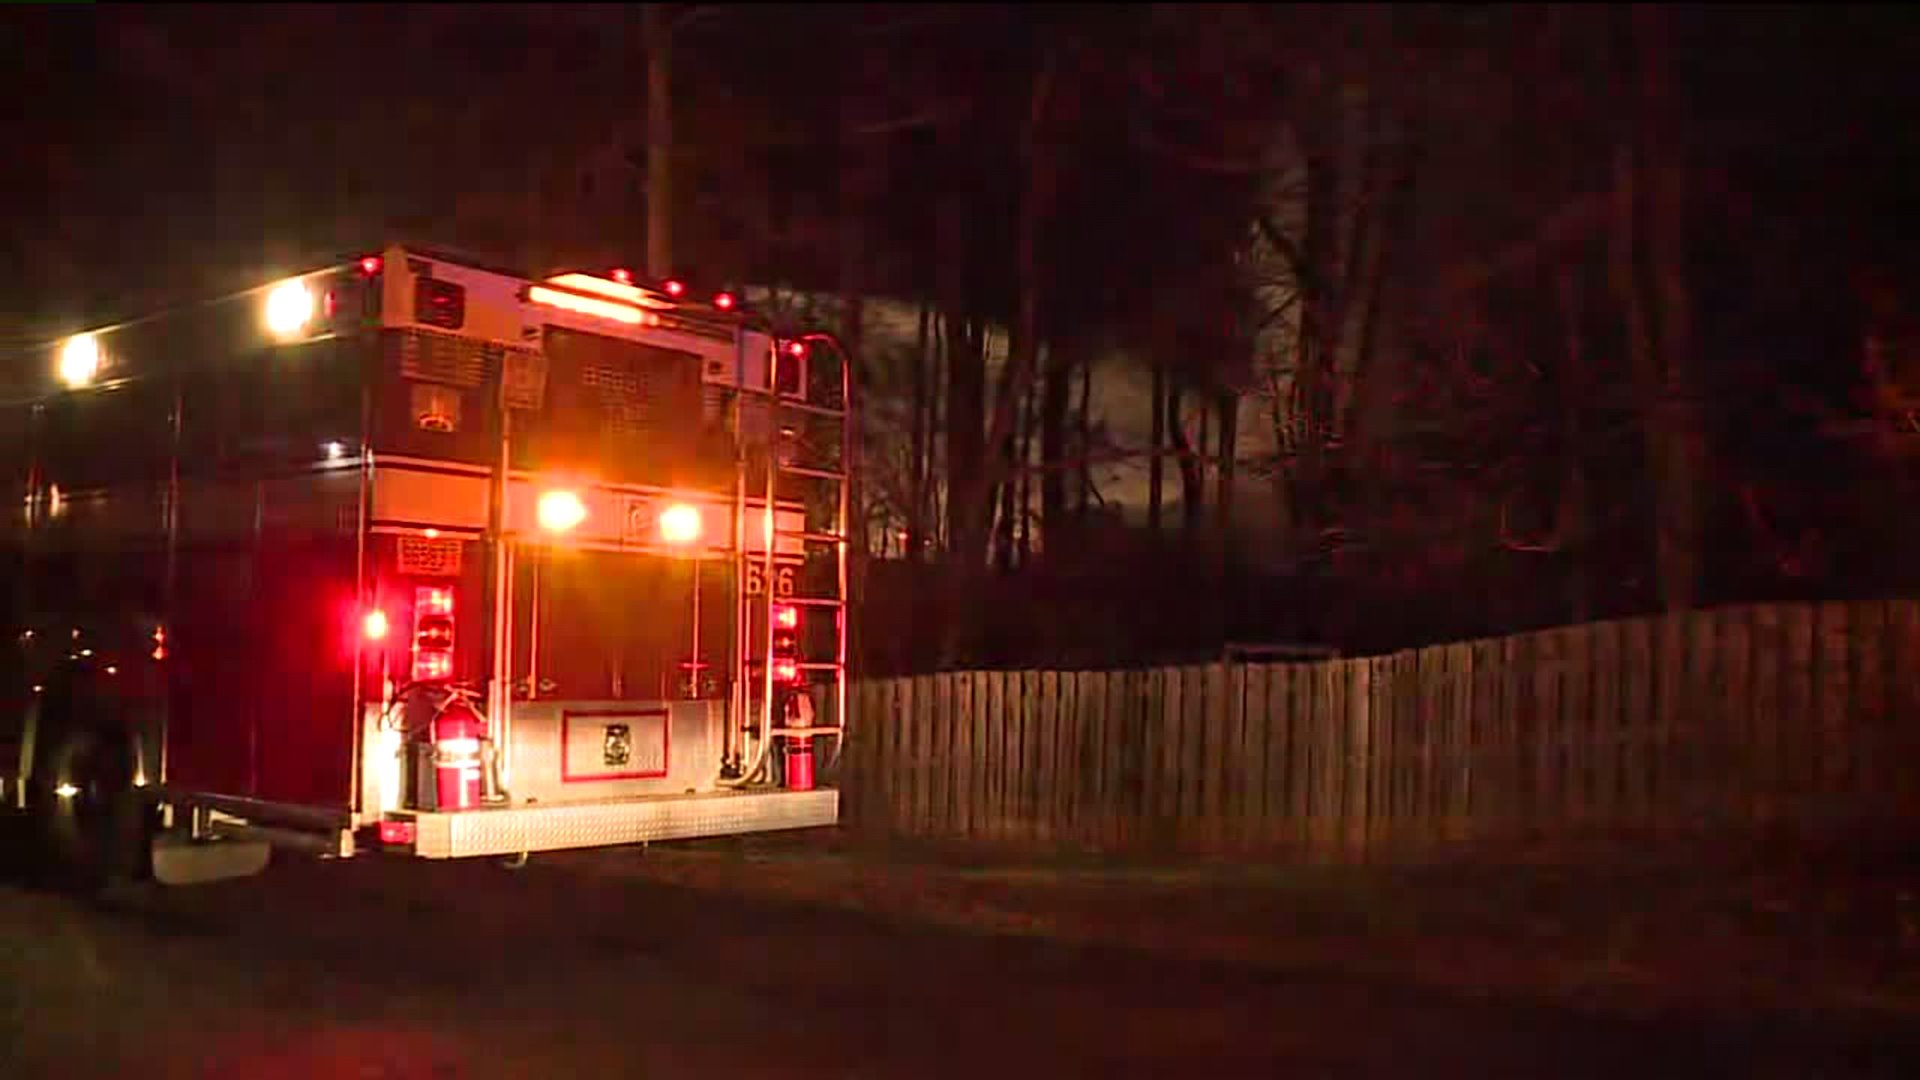 Firefighters called to house fire in Kernersville